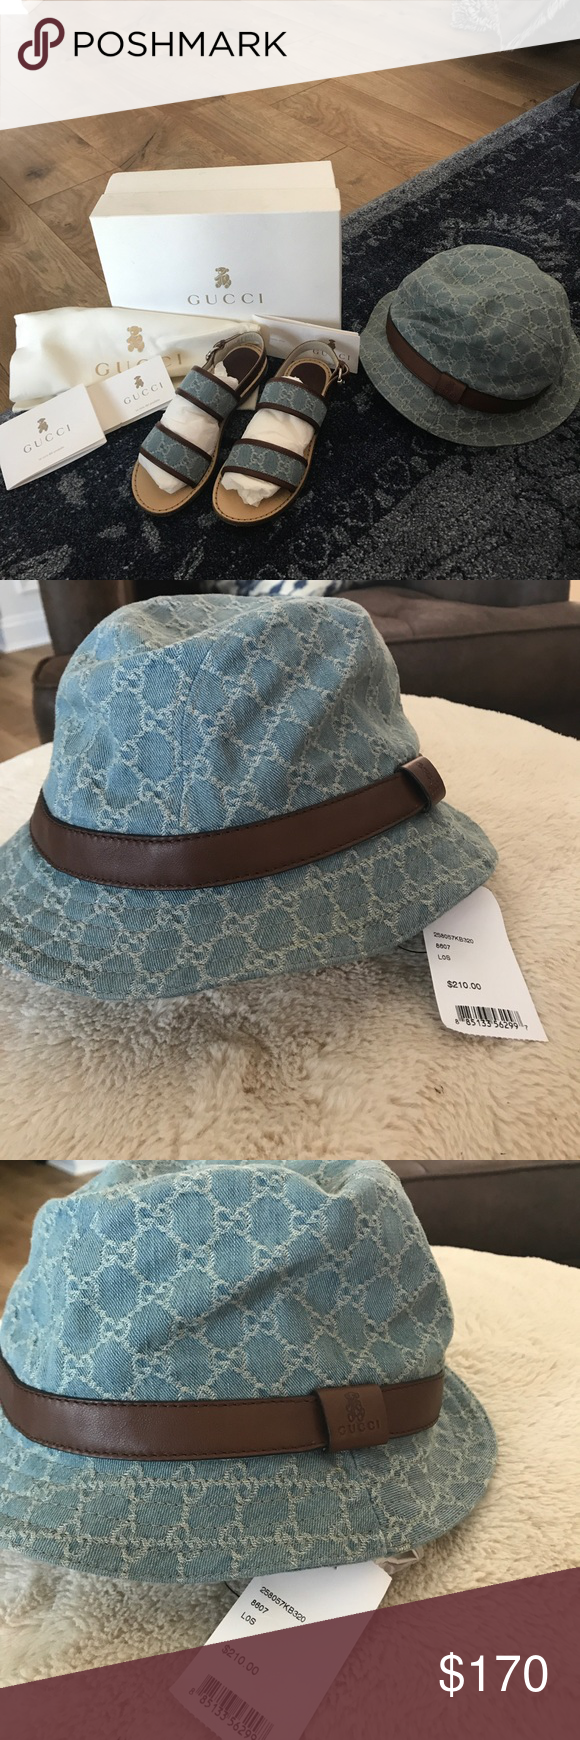 Gucci Fedora Bucket hat Kids Gucci bucket hat GG new with tags . Matching  shoes in other listing Gucci Accessories Hats 3cc1d198eb0a